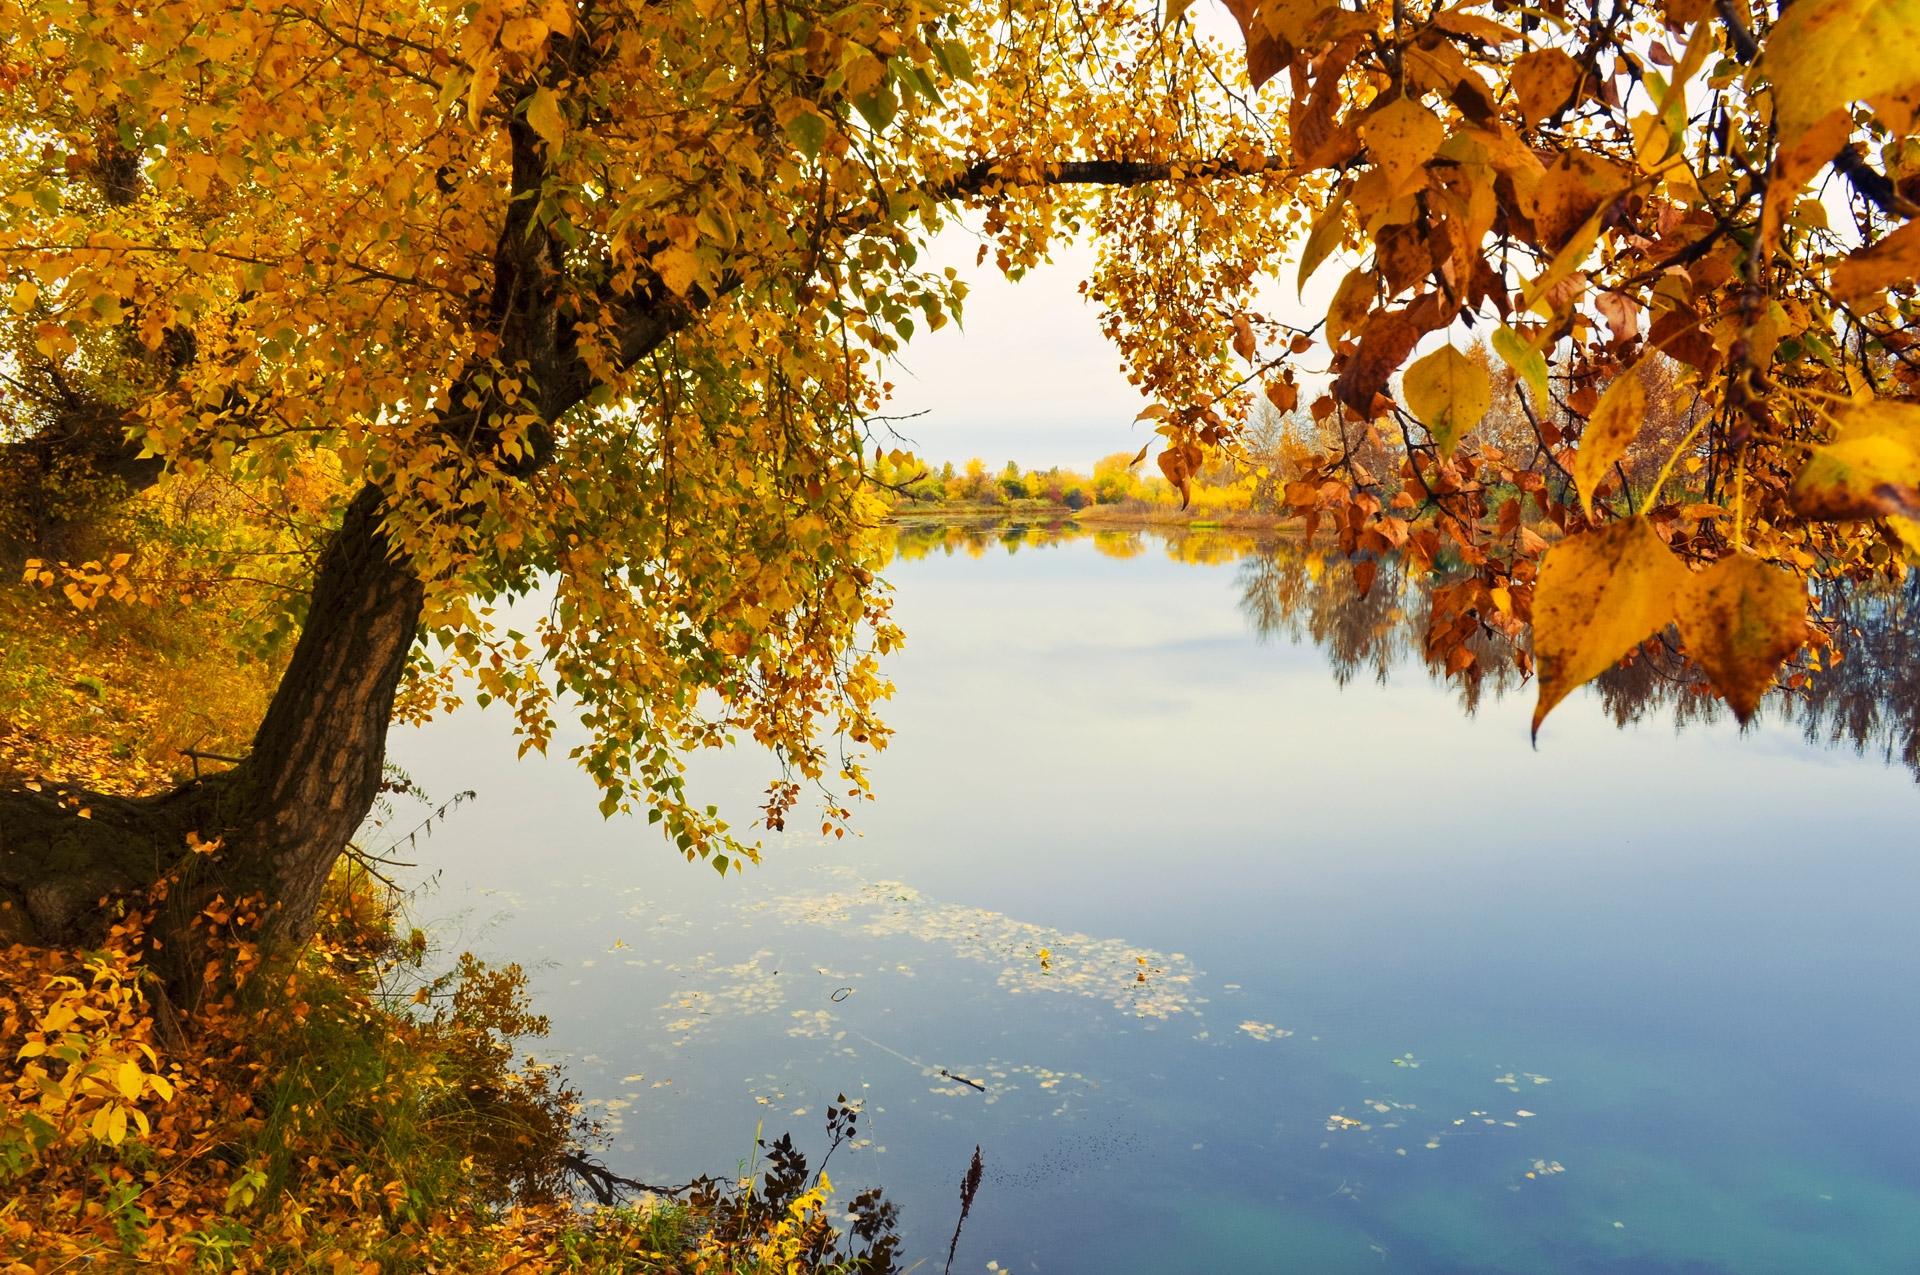 Autumn River Bank Free Stock Photo - Public Domain Pictures